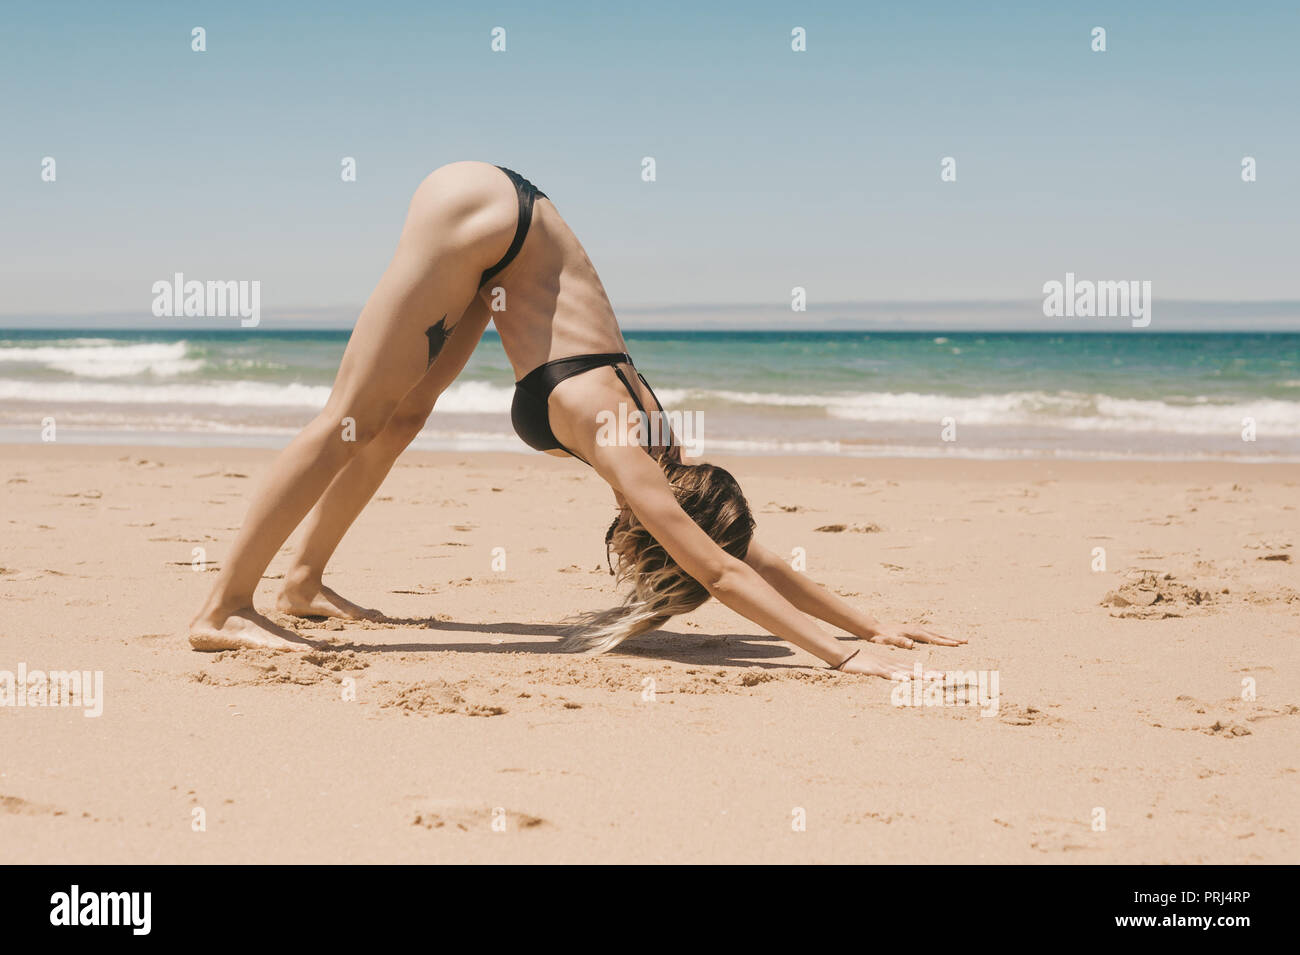 side view of young woman practicing downward facing dog yoga pose on sandy beach Stock Photo